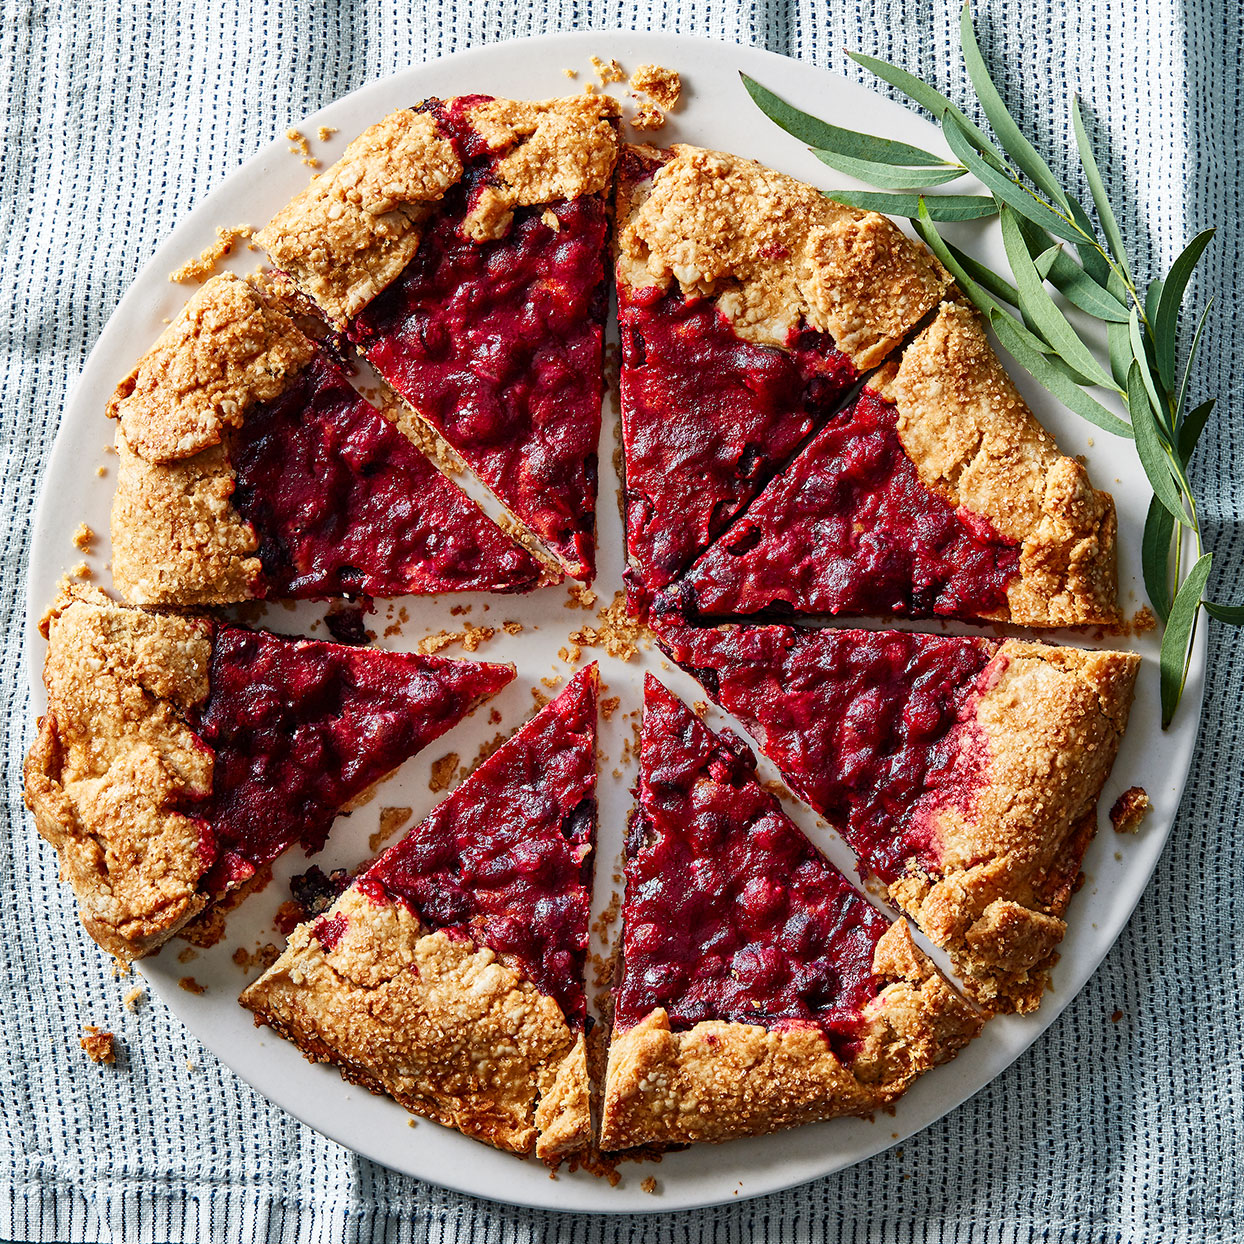 Expand your holiday desserts repertoire with this cranberry galette. Frangipane is a sweet pastry cream typically made with ground almonds; here we substitute ground sesame seeds in the form of tahini to give it a complex, earthy flavor. If you've made the Cranberry-Almond Thumbprint Cookies (see Associated Recipes), you can use some of the leftover jam in Step 9.